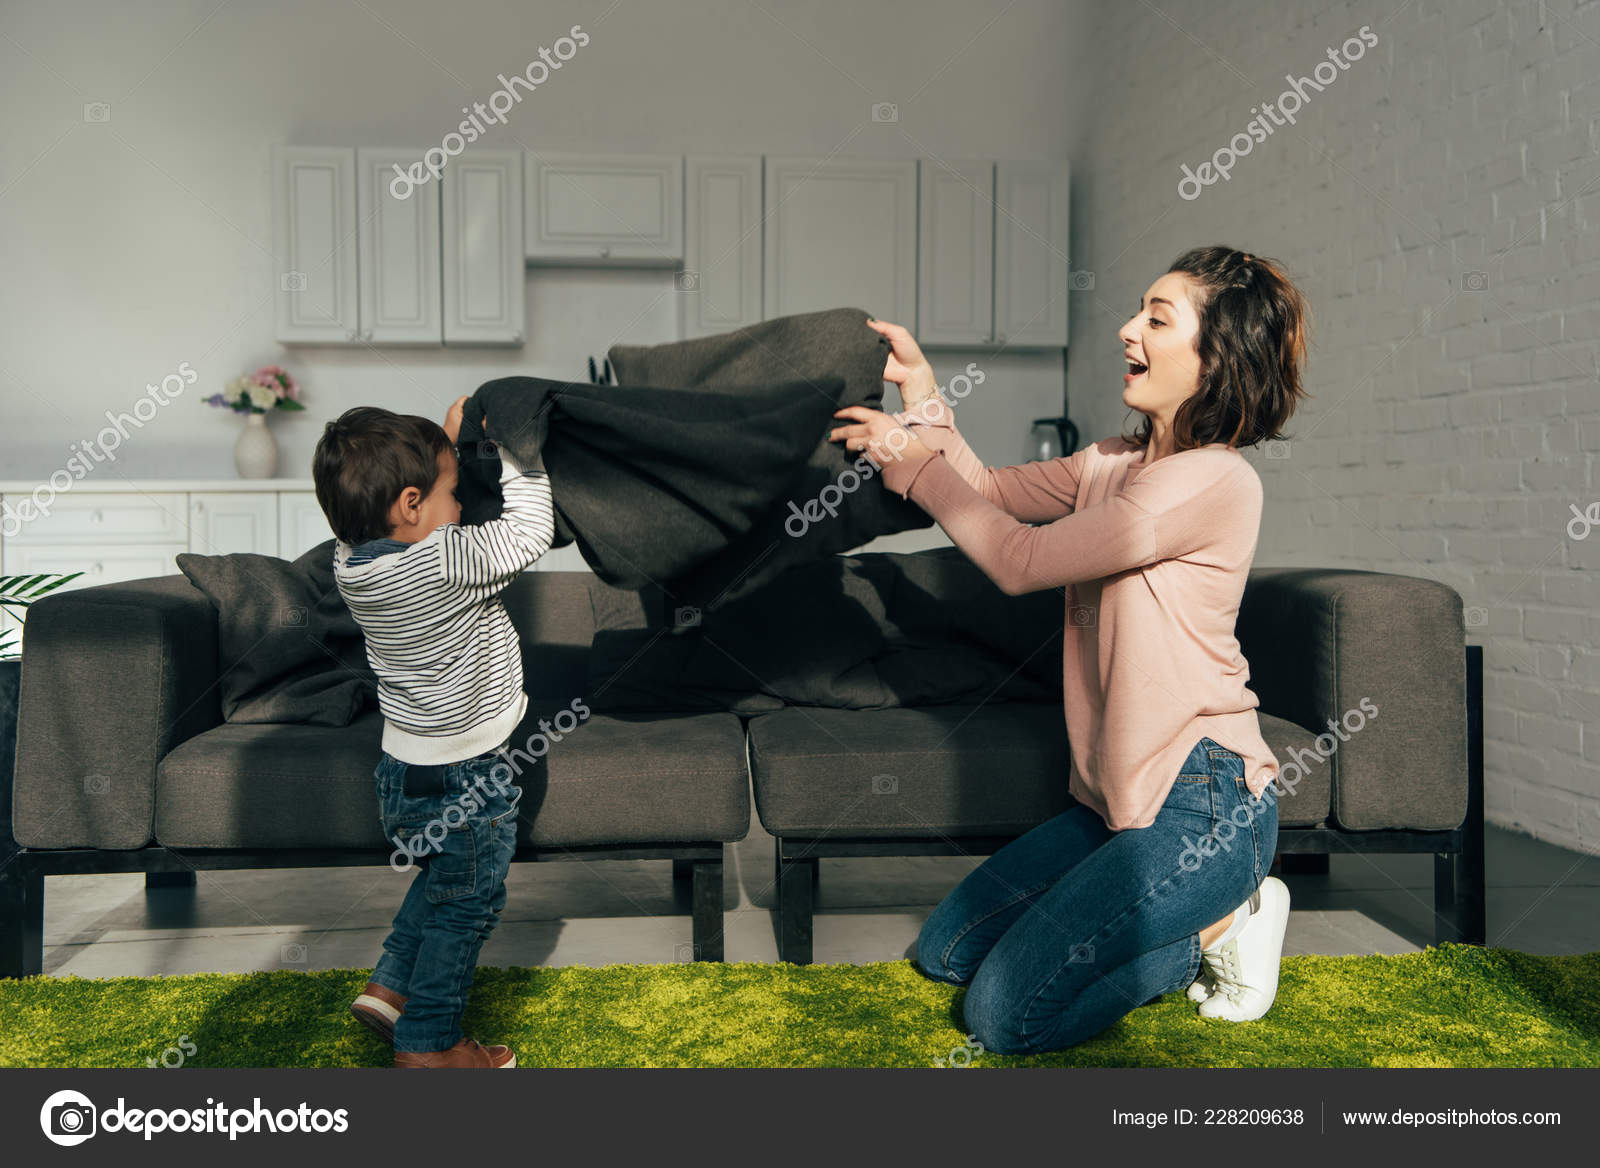 Free Spreading Pics side view mother son spreading blanket sofa living room